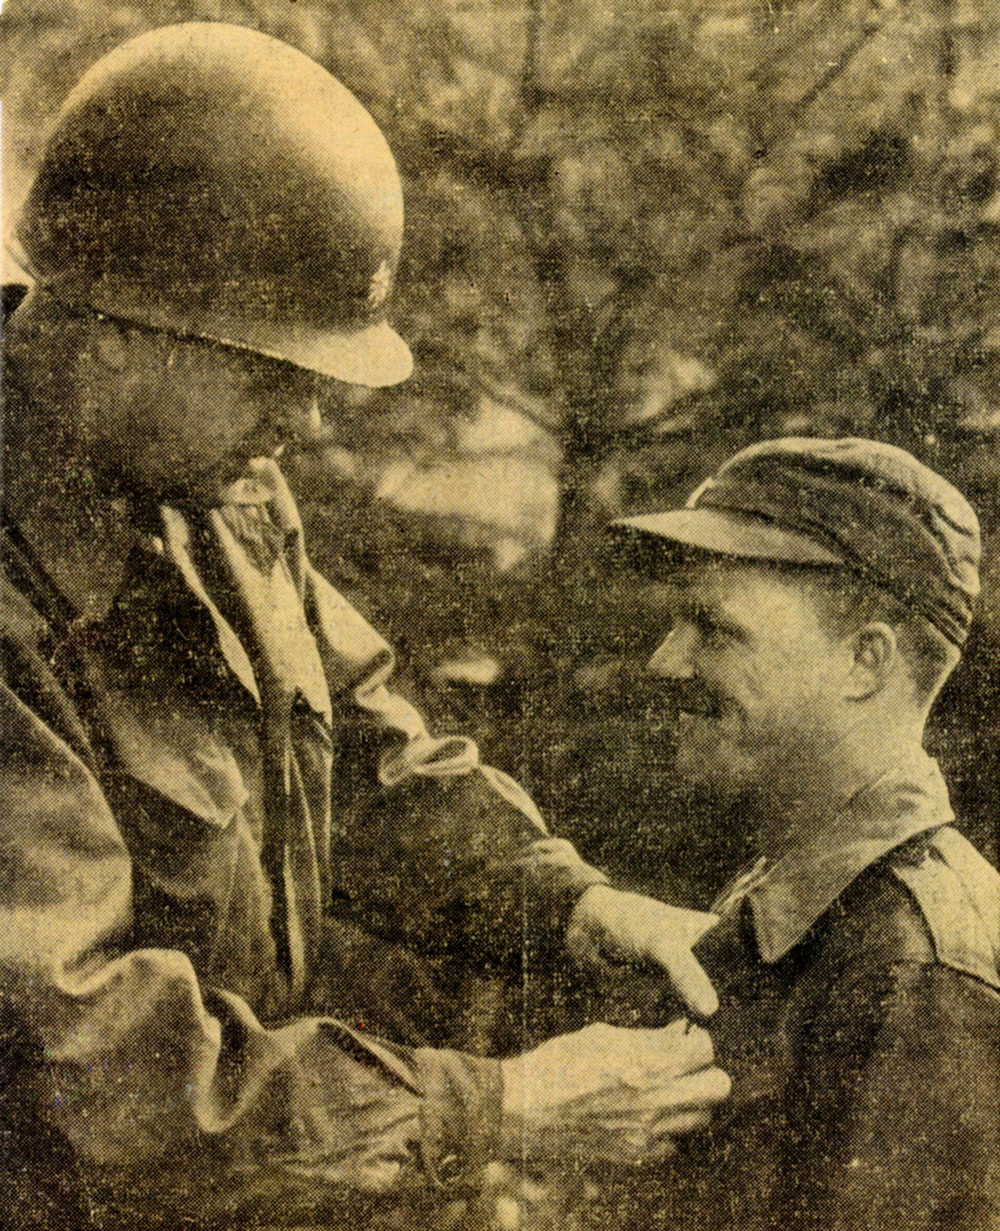 Dan Noorlander receiving Bronze Star Medal